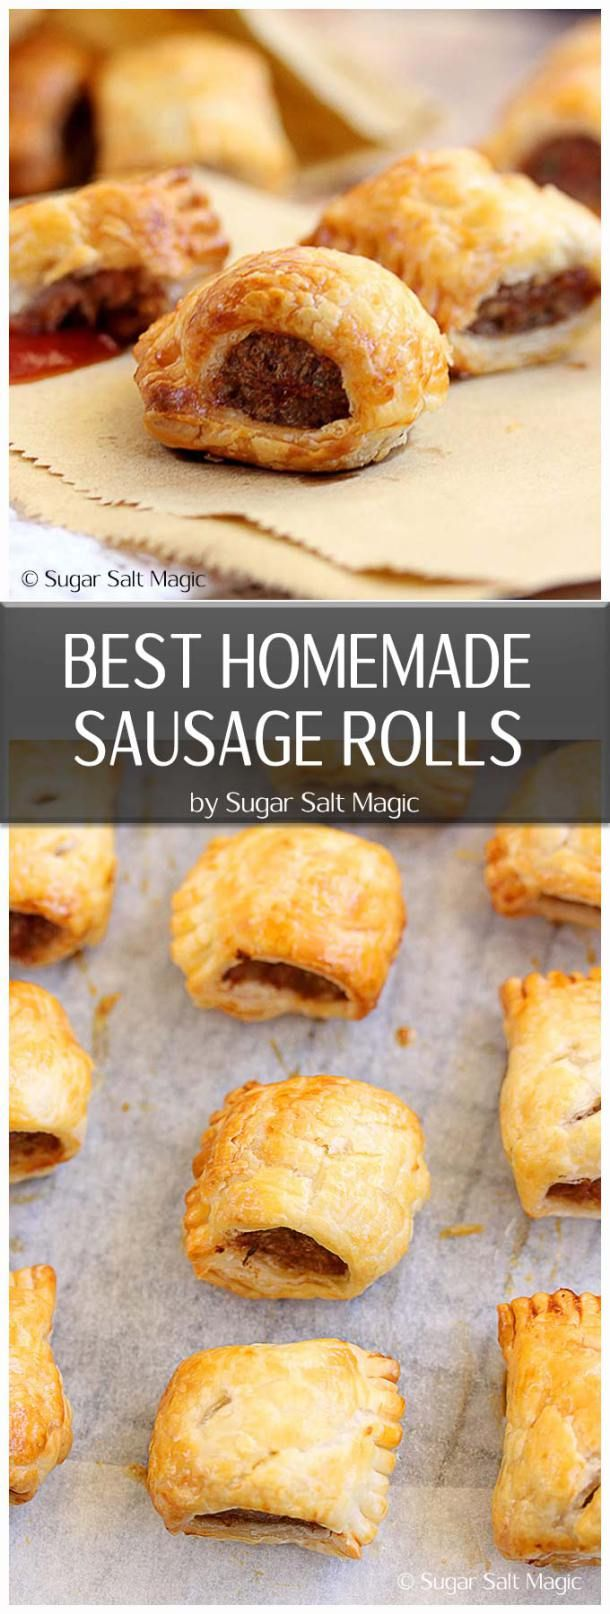 An easy 5 ingredient recipe for the best homemade sausage rolls ever by Sugar Salt Magic. Such a perfect, easy snack.